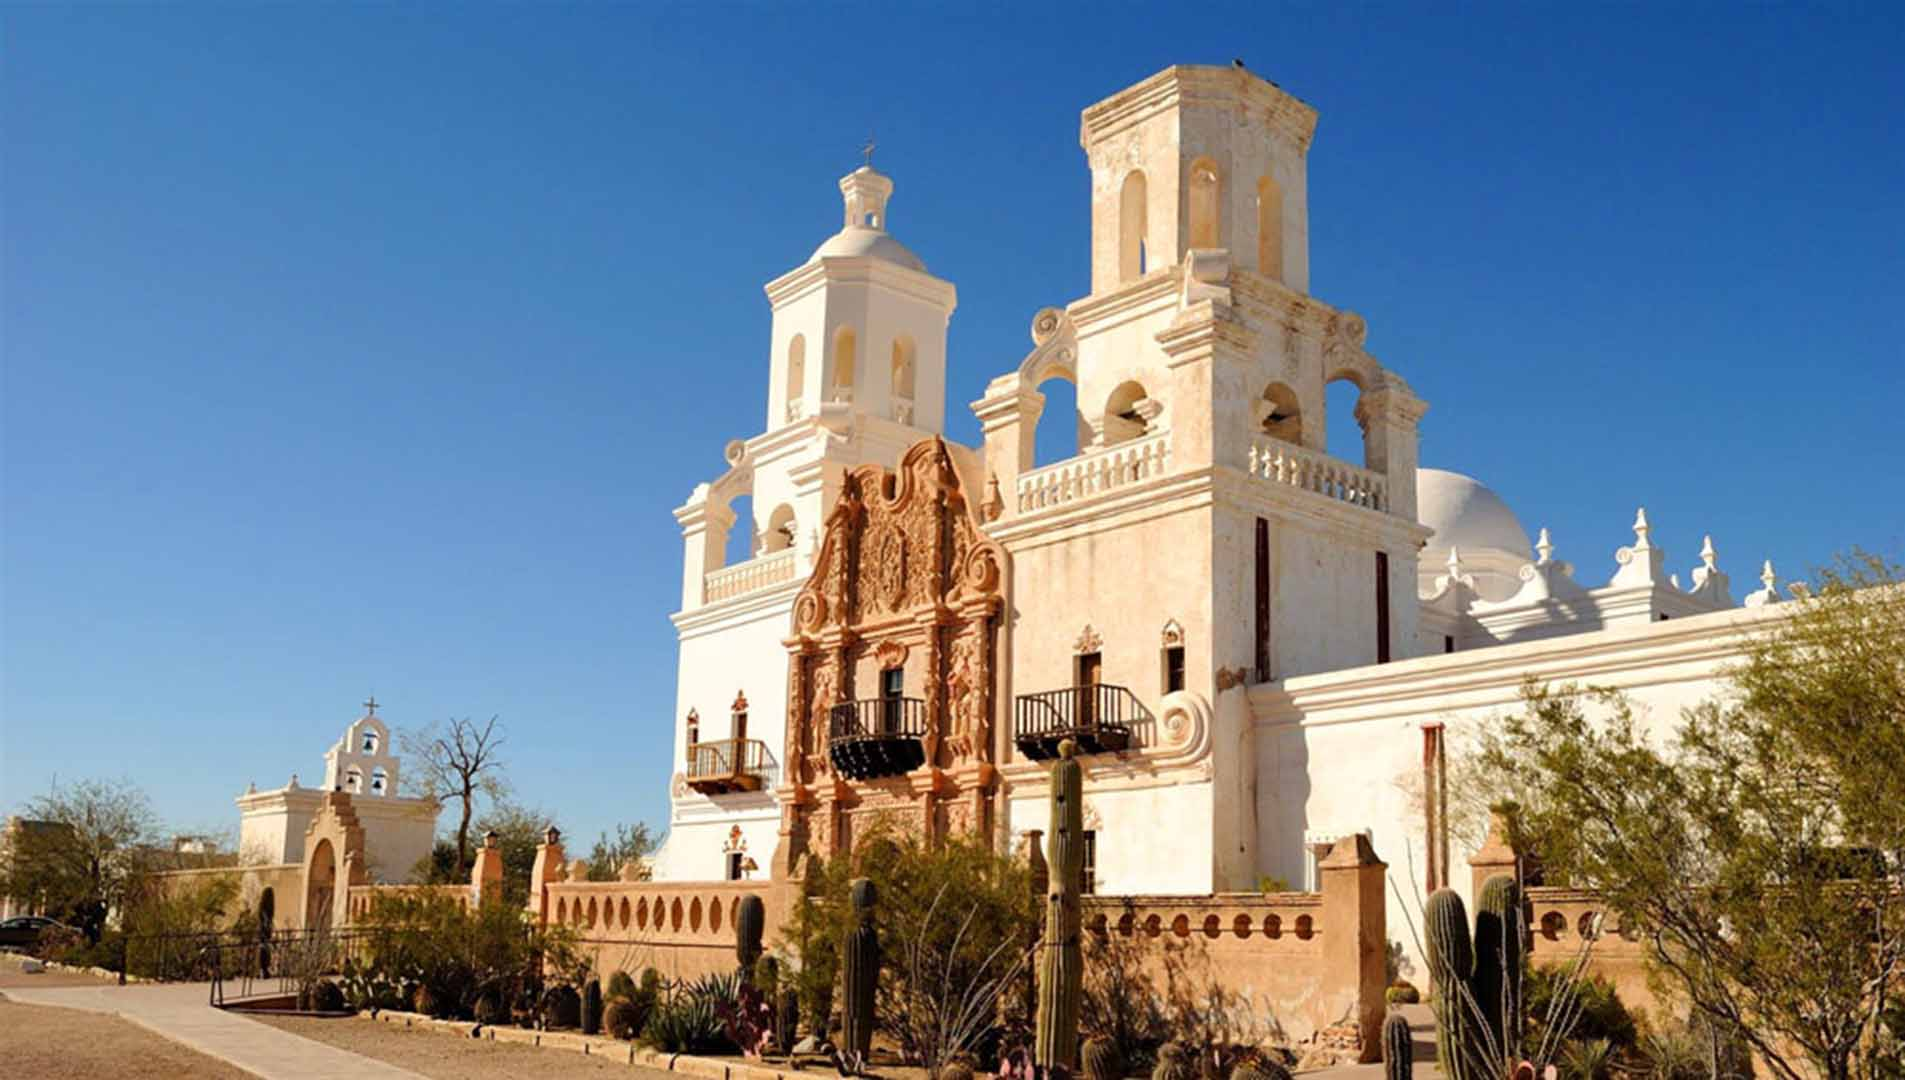 The Mission San Xavier del Bac.